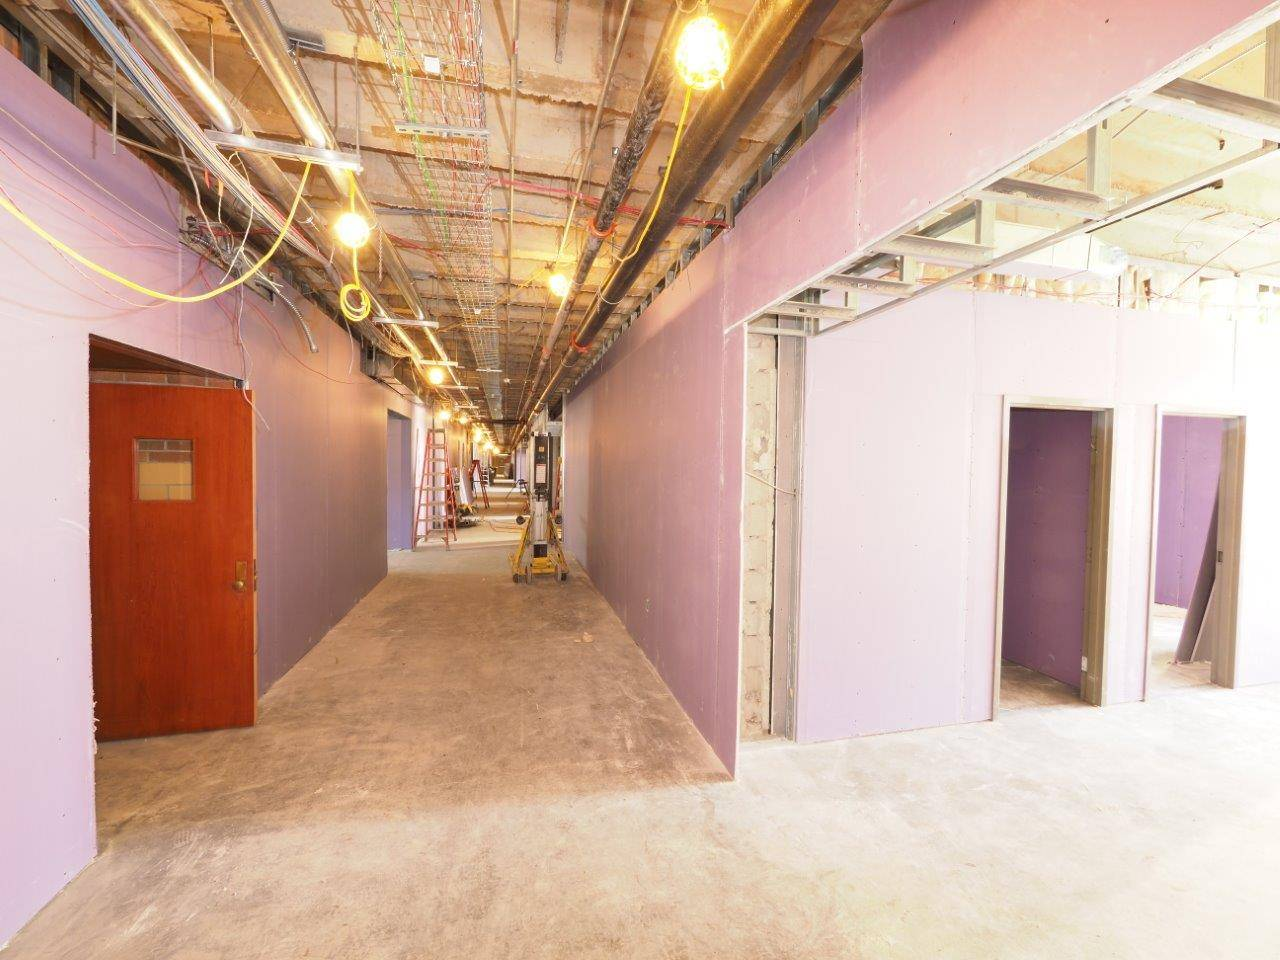 Inside the Tremont Elementary School renovation project